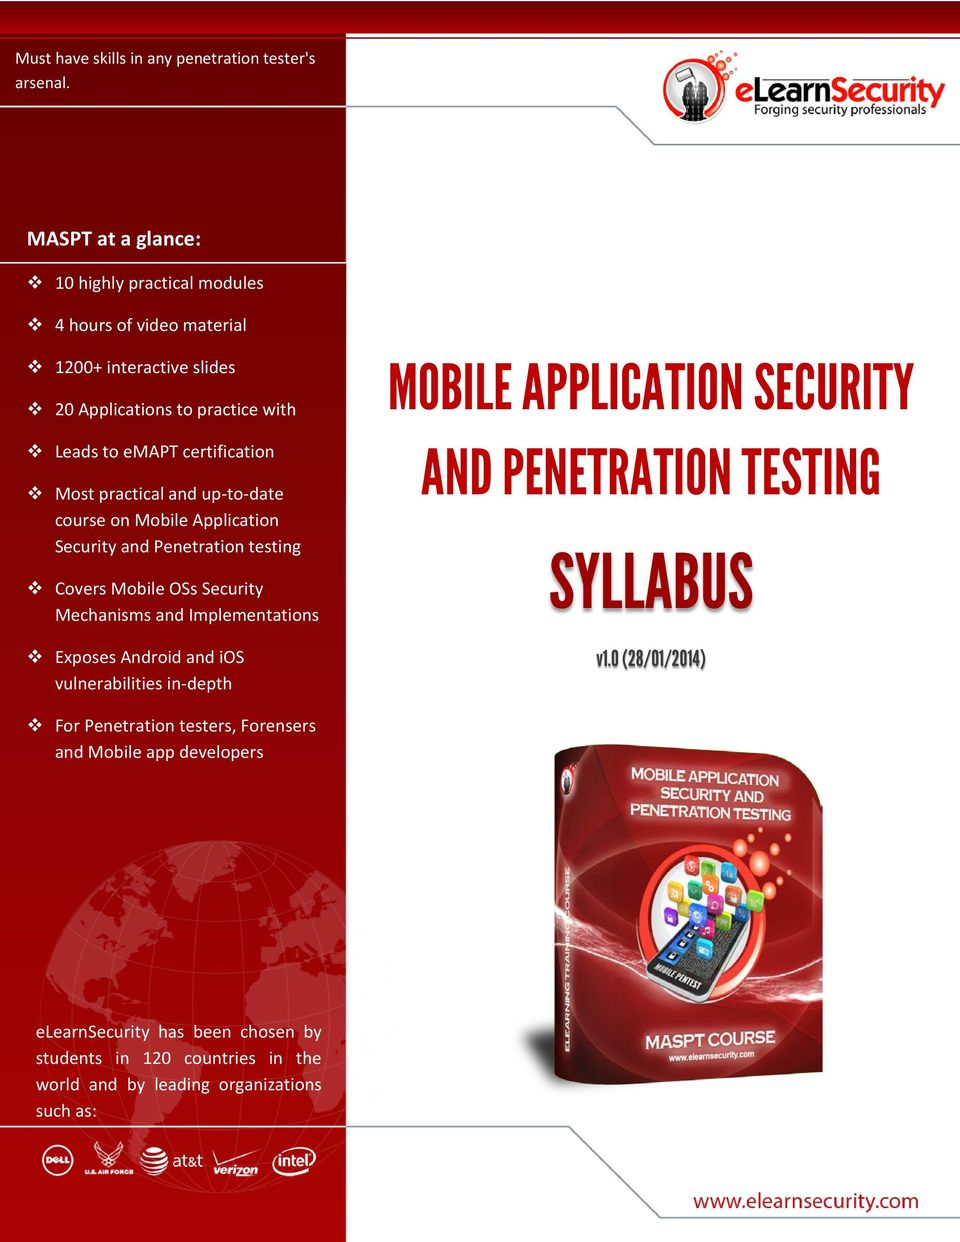 practical and up-to-date course on Mobile Application Security and Penetration testing Covers Mobile OSs Security Mechanisms and Implementations Exposes Android and